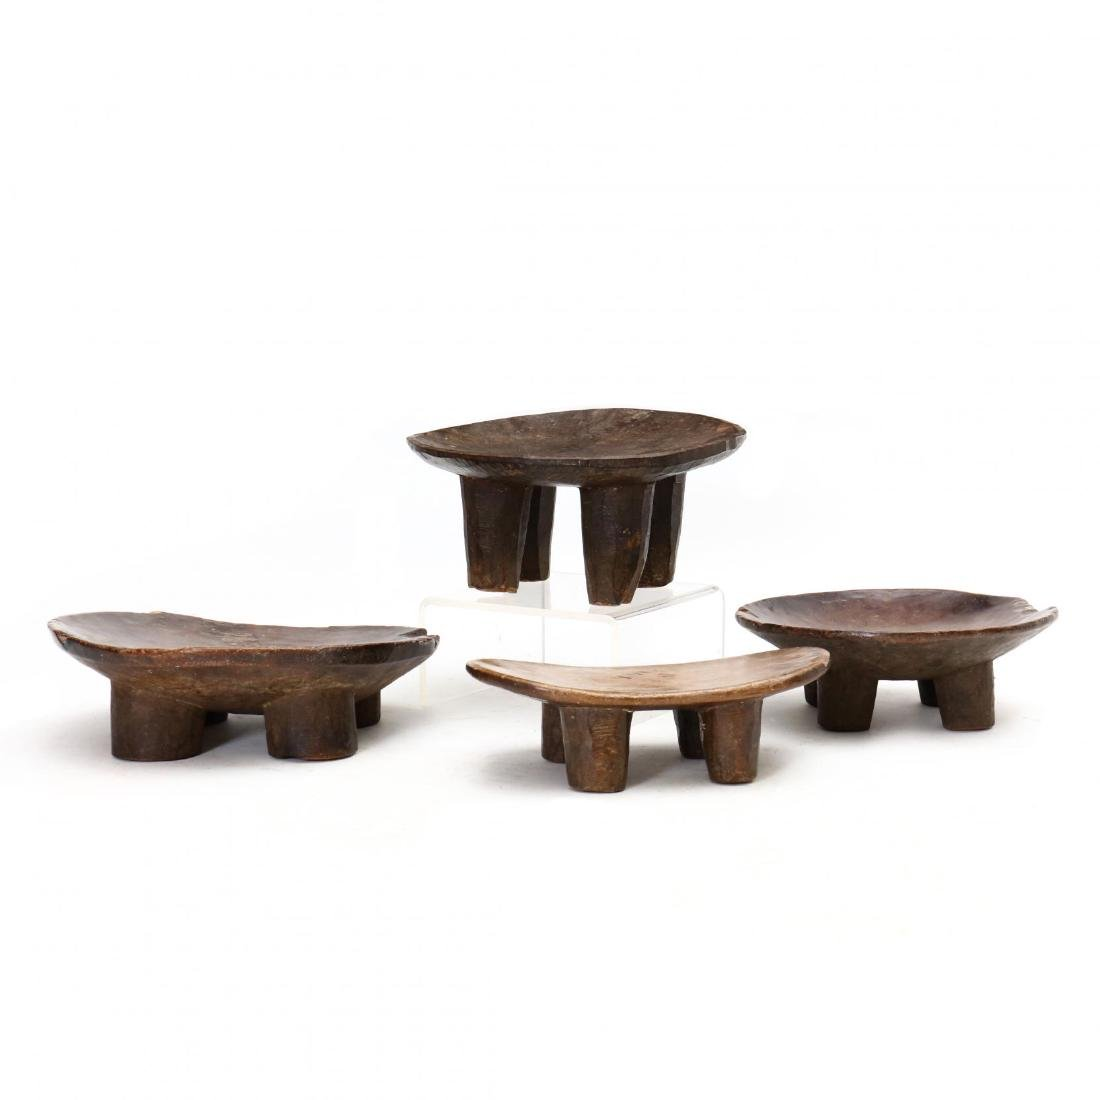 Four African Carved Wood Stools - 2